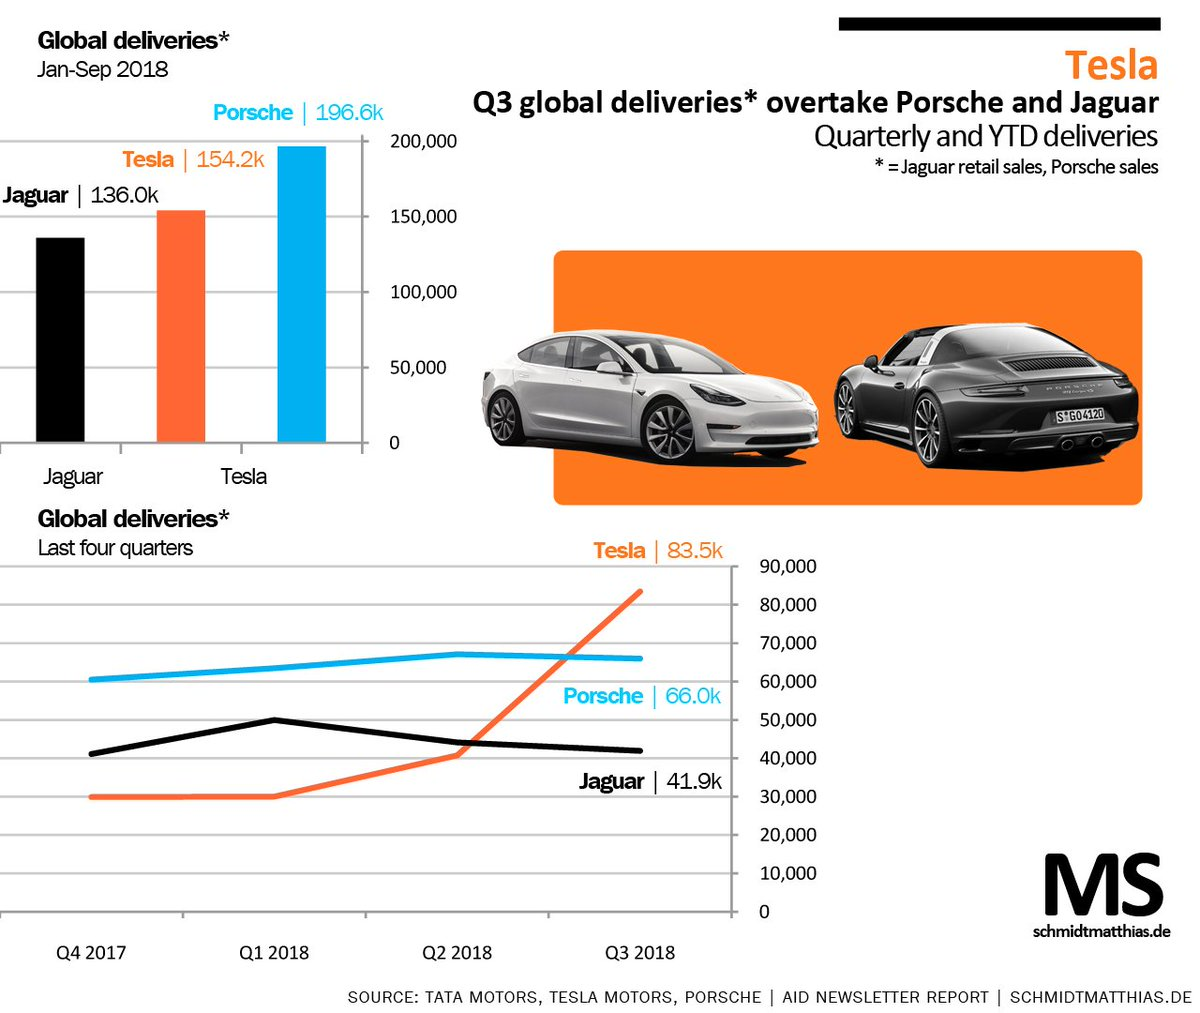 #Tesla delivered more vehicles in Q3 than #Porsche* in the same quarter. Full story in next @AIDNewsletter As previously reported Tesla delivered more vehicles globally YTD than #Jaguar*. Tesla still lie behind Porsche at this stage *Porsche report sales, Jaguar retail sales